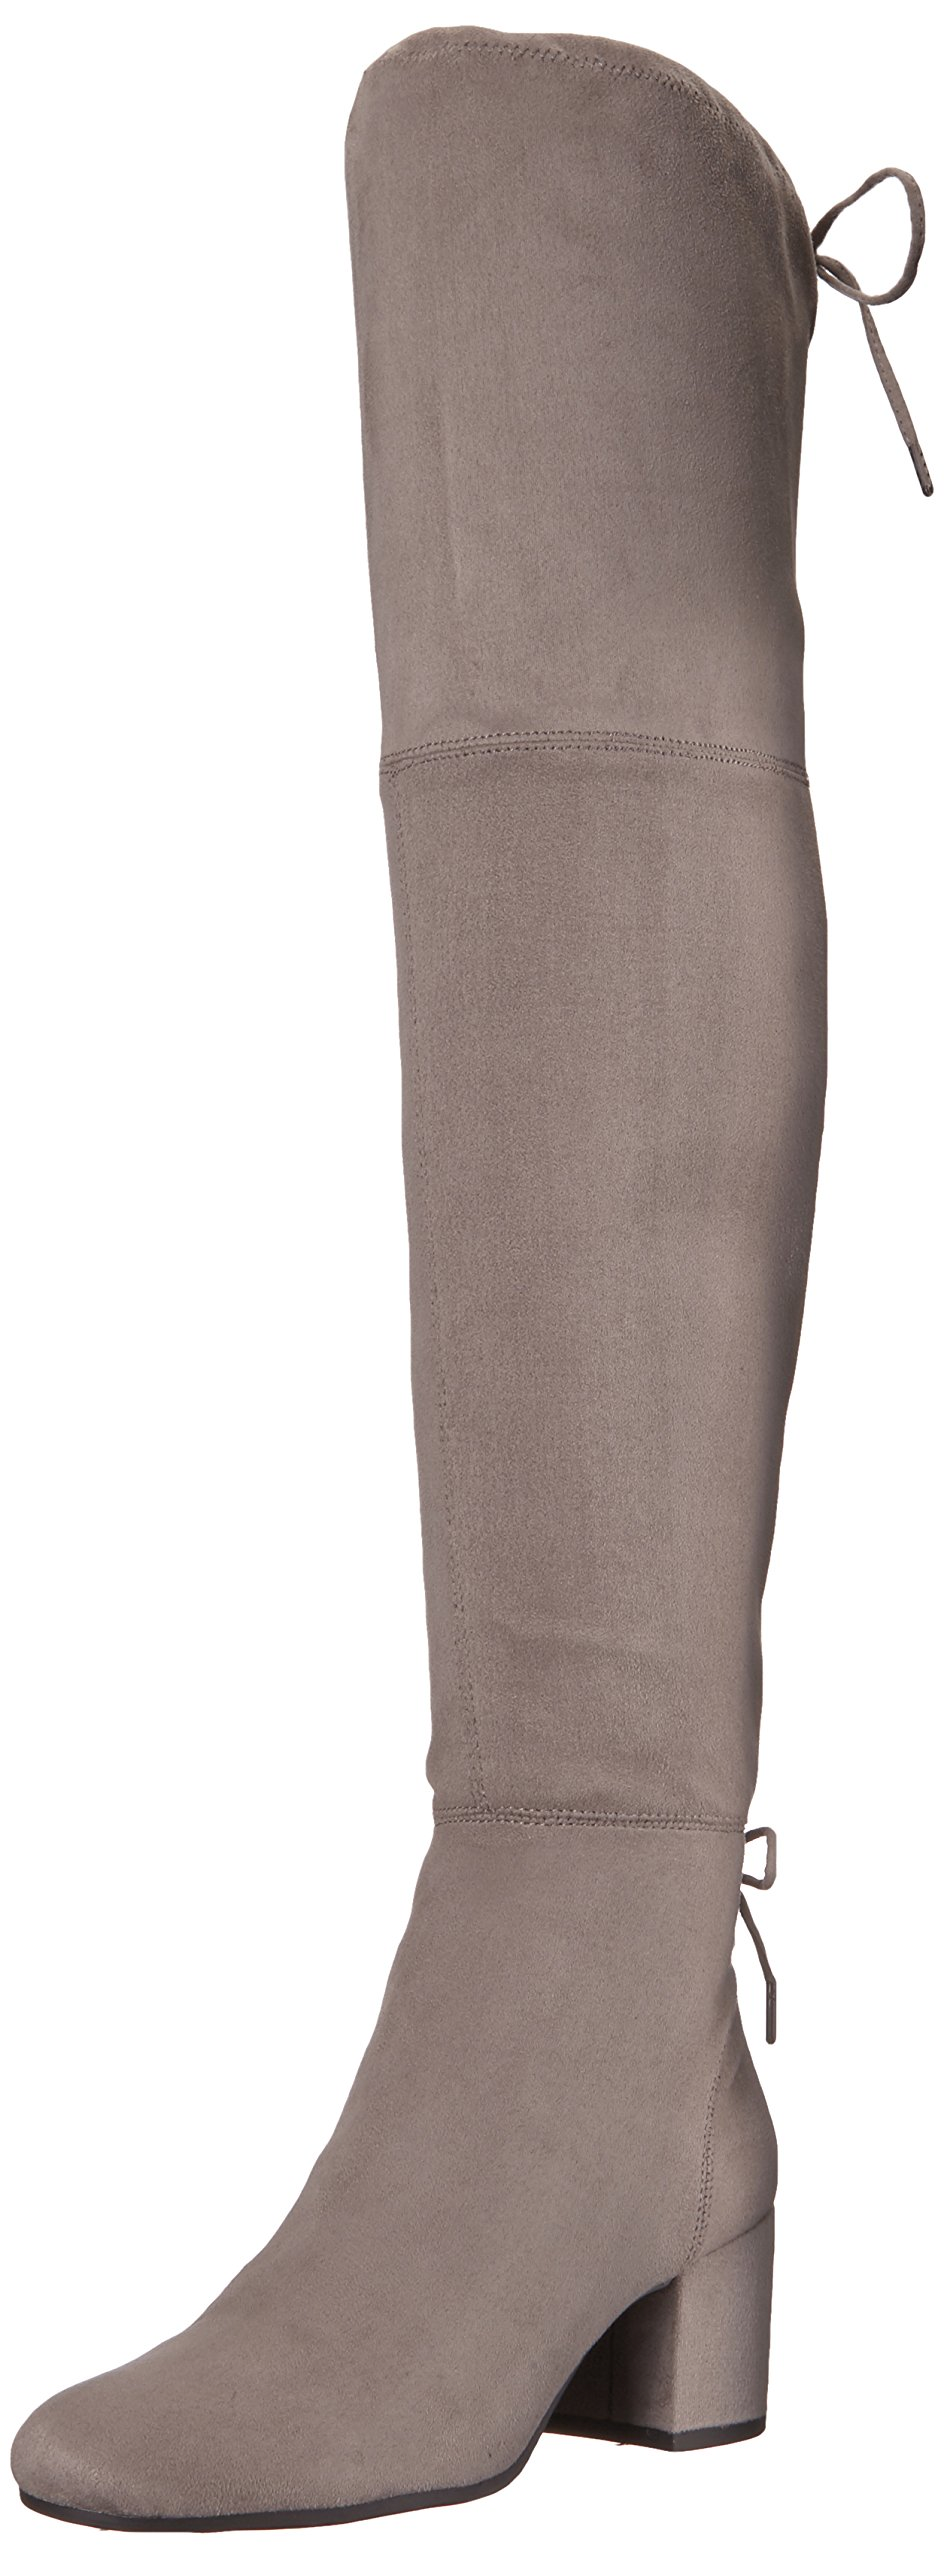 Circus by Sam Edelman Women's Virginia Over The Knee Boot, Grey Frost, 7 Medium US